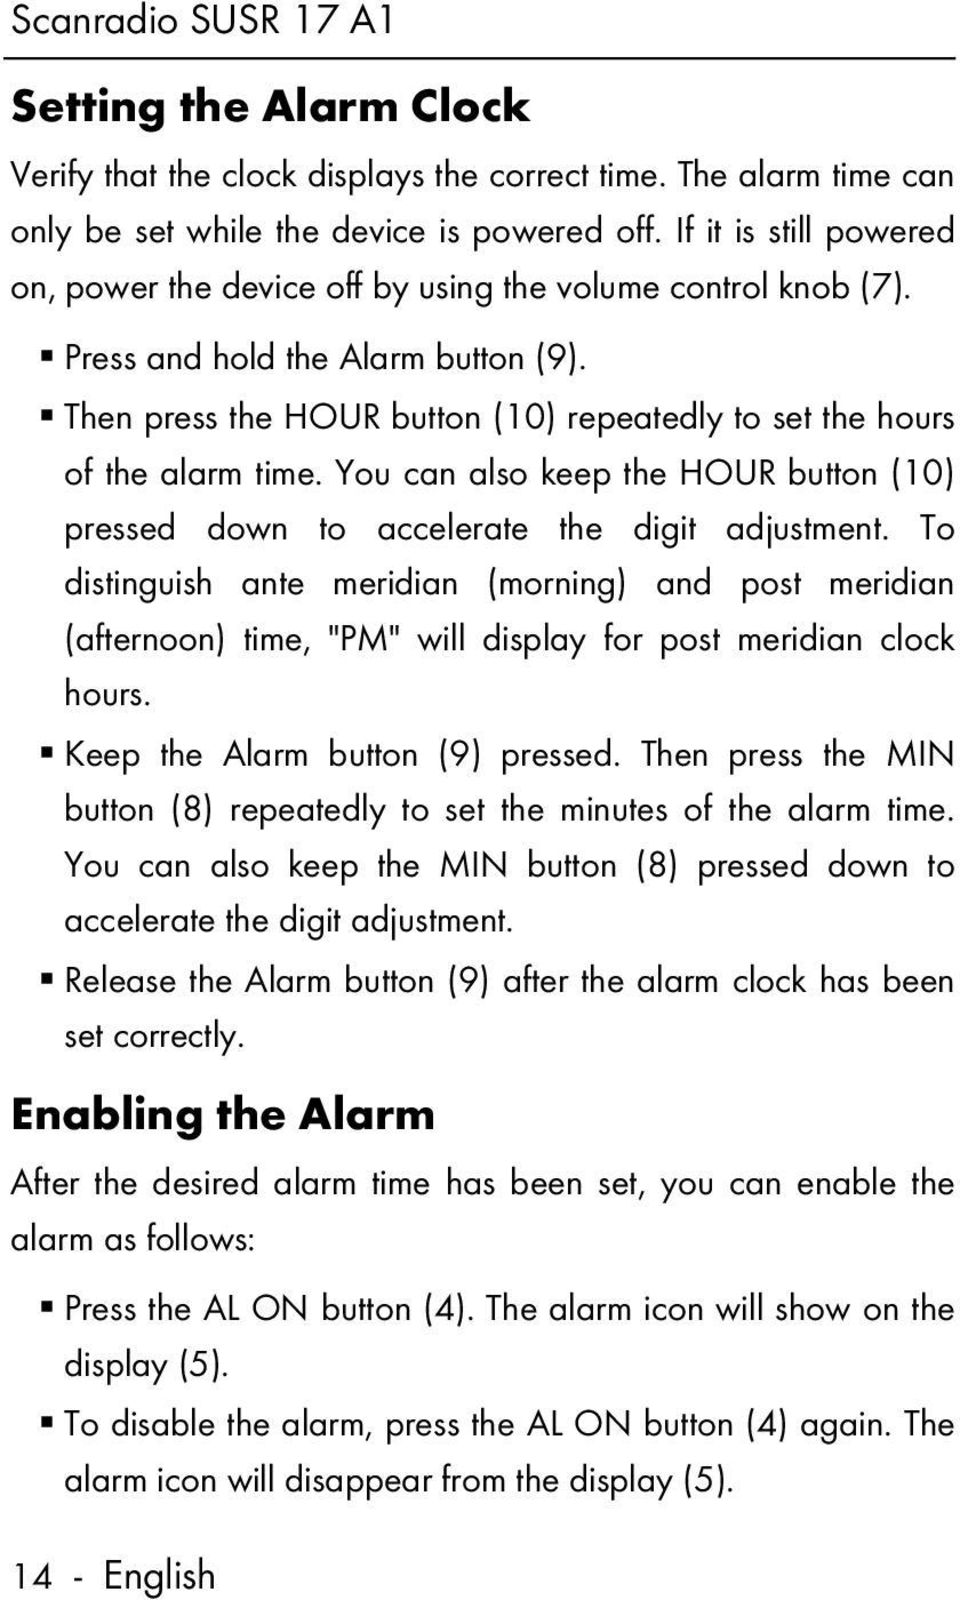 Then press the HOUR button (10) repeatedly to set the hours of the alarm time. You can also keep the HOUR button (10) pressed down to accelerate the digit adjustment.